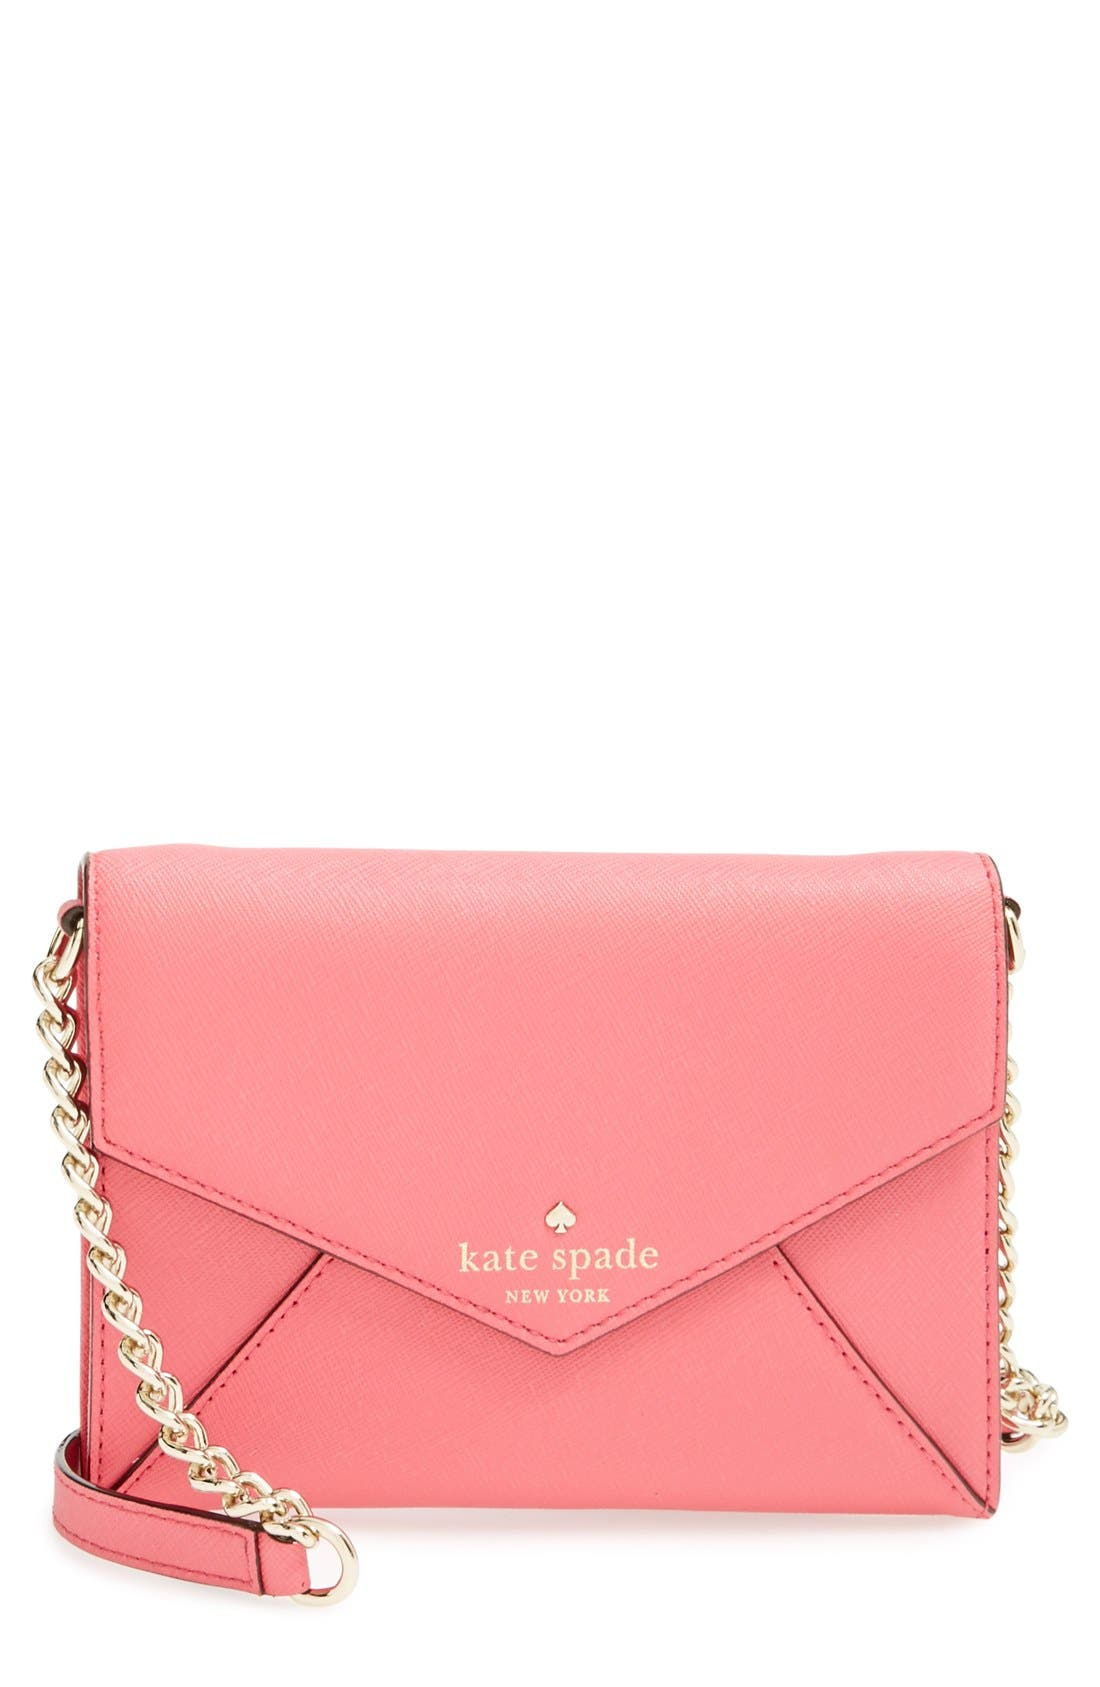 Alternate Image 1 Selected - kate spade new york 'cedar street - monday' crossbody bag